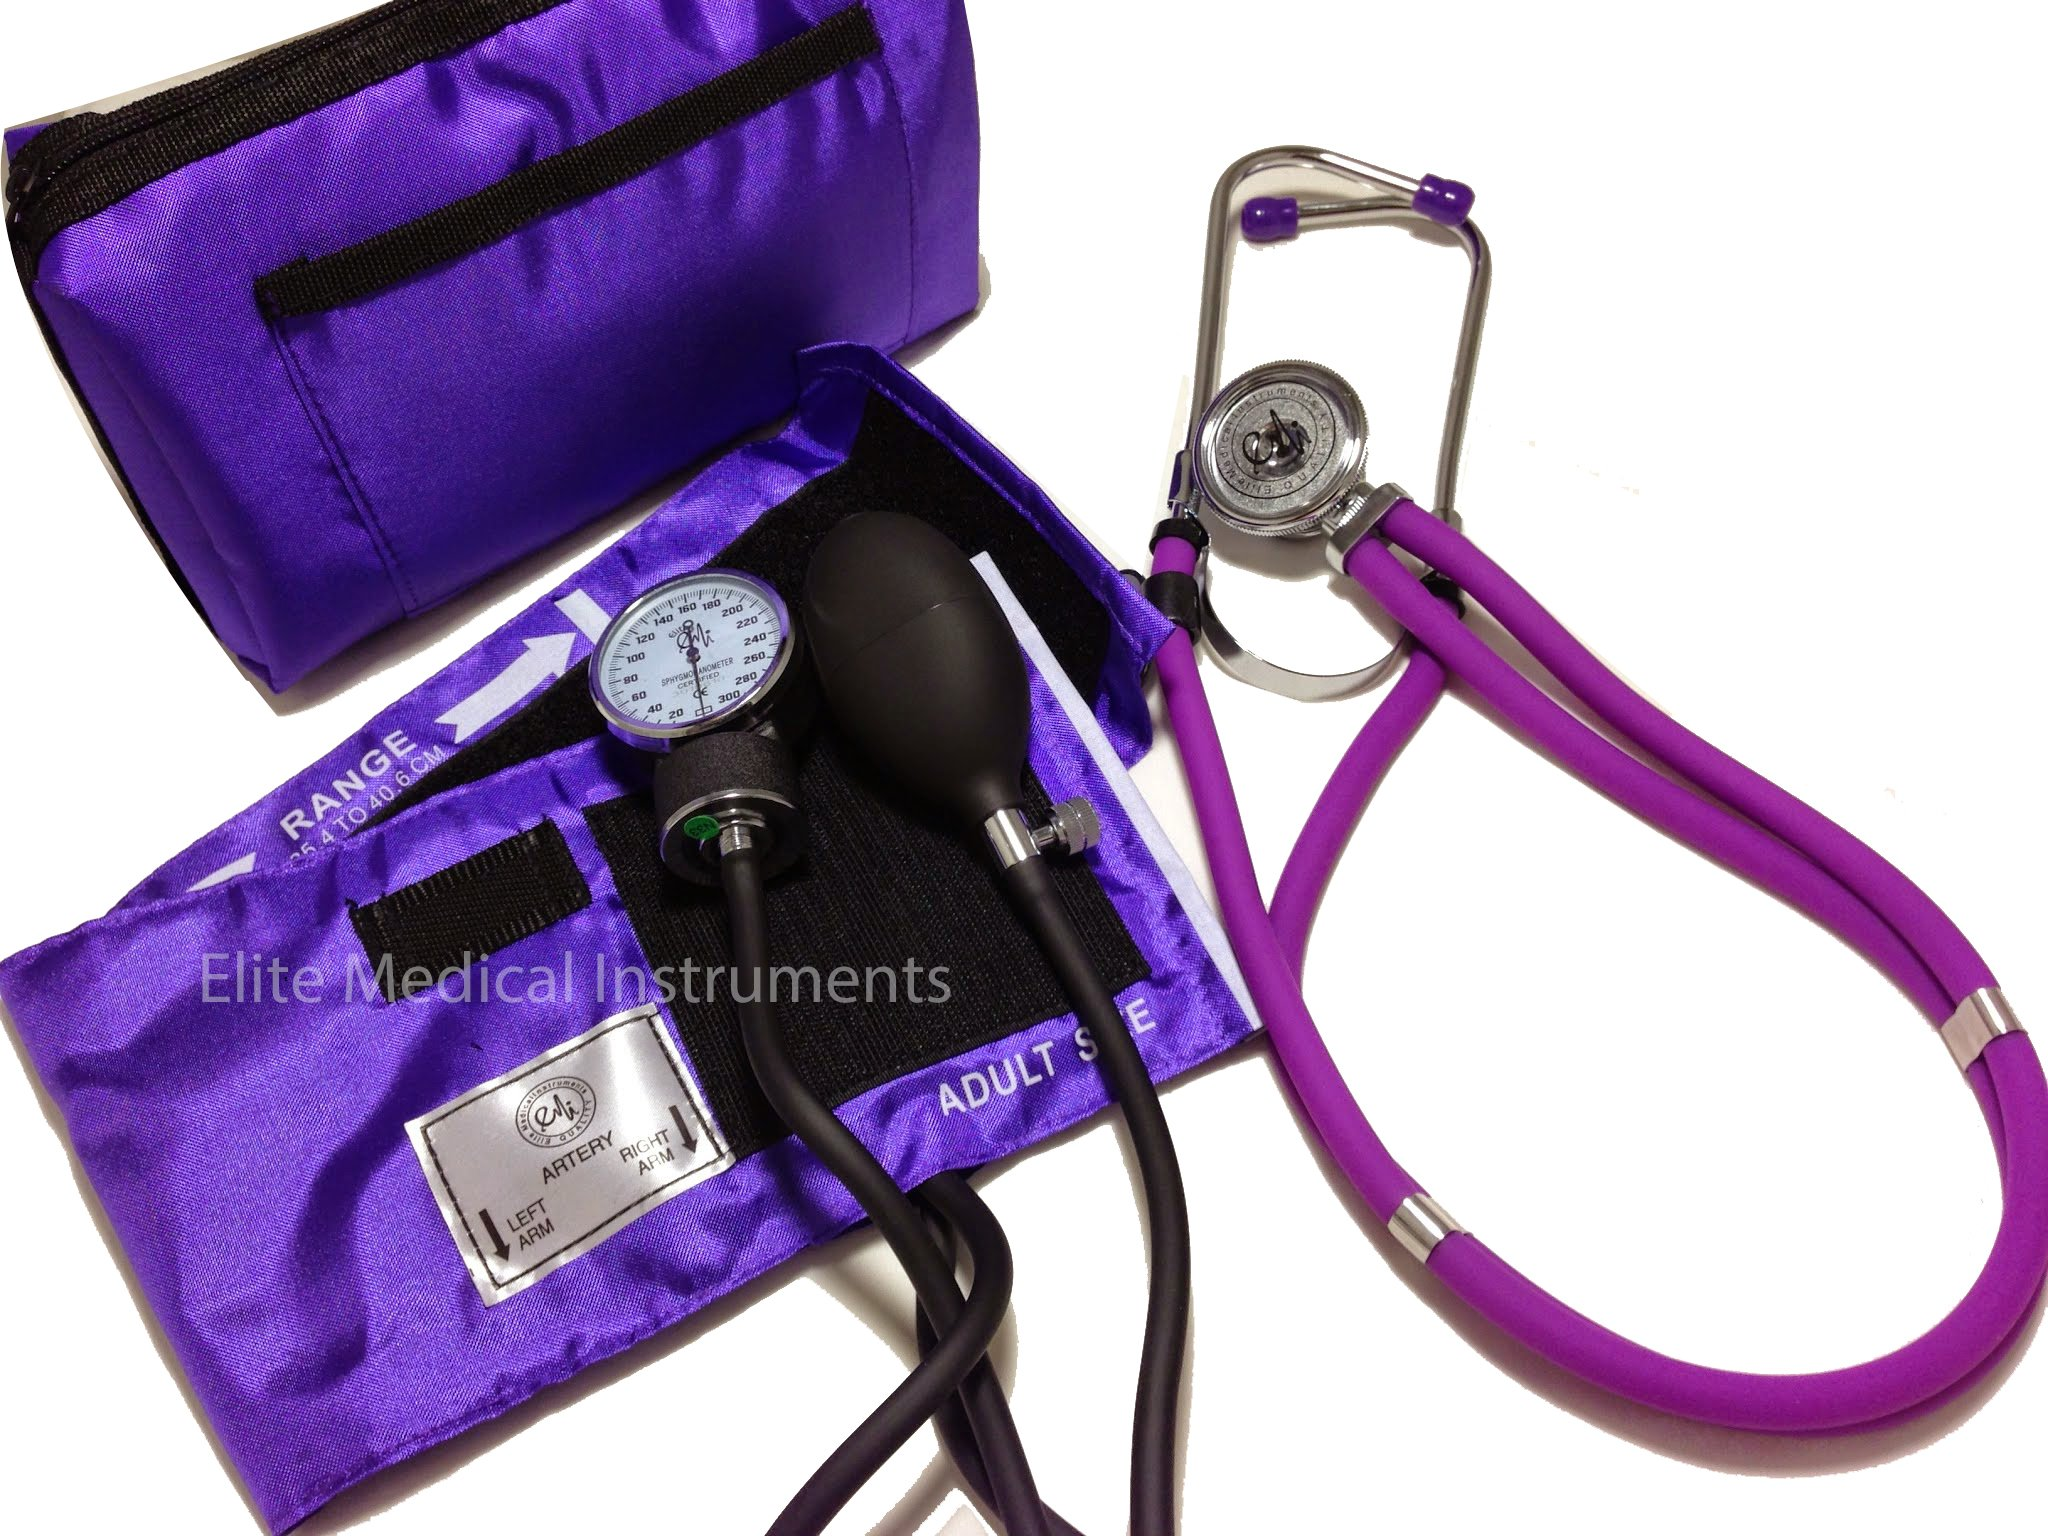 EMI Professional Deluxe PURPLE Aneroid Sphygmomanometer and Sprague Rappaport Stethoscope Set Kit #330